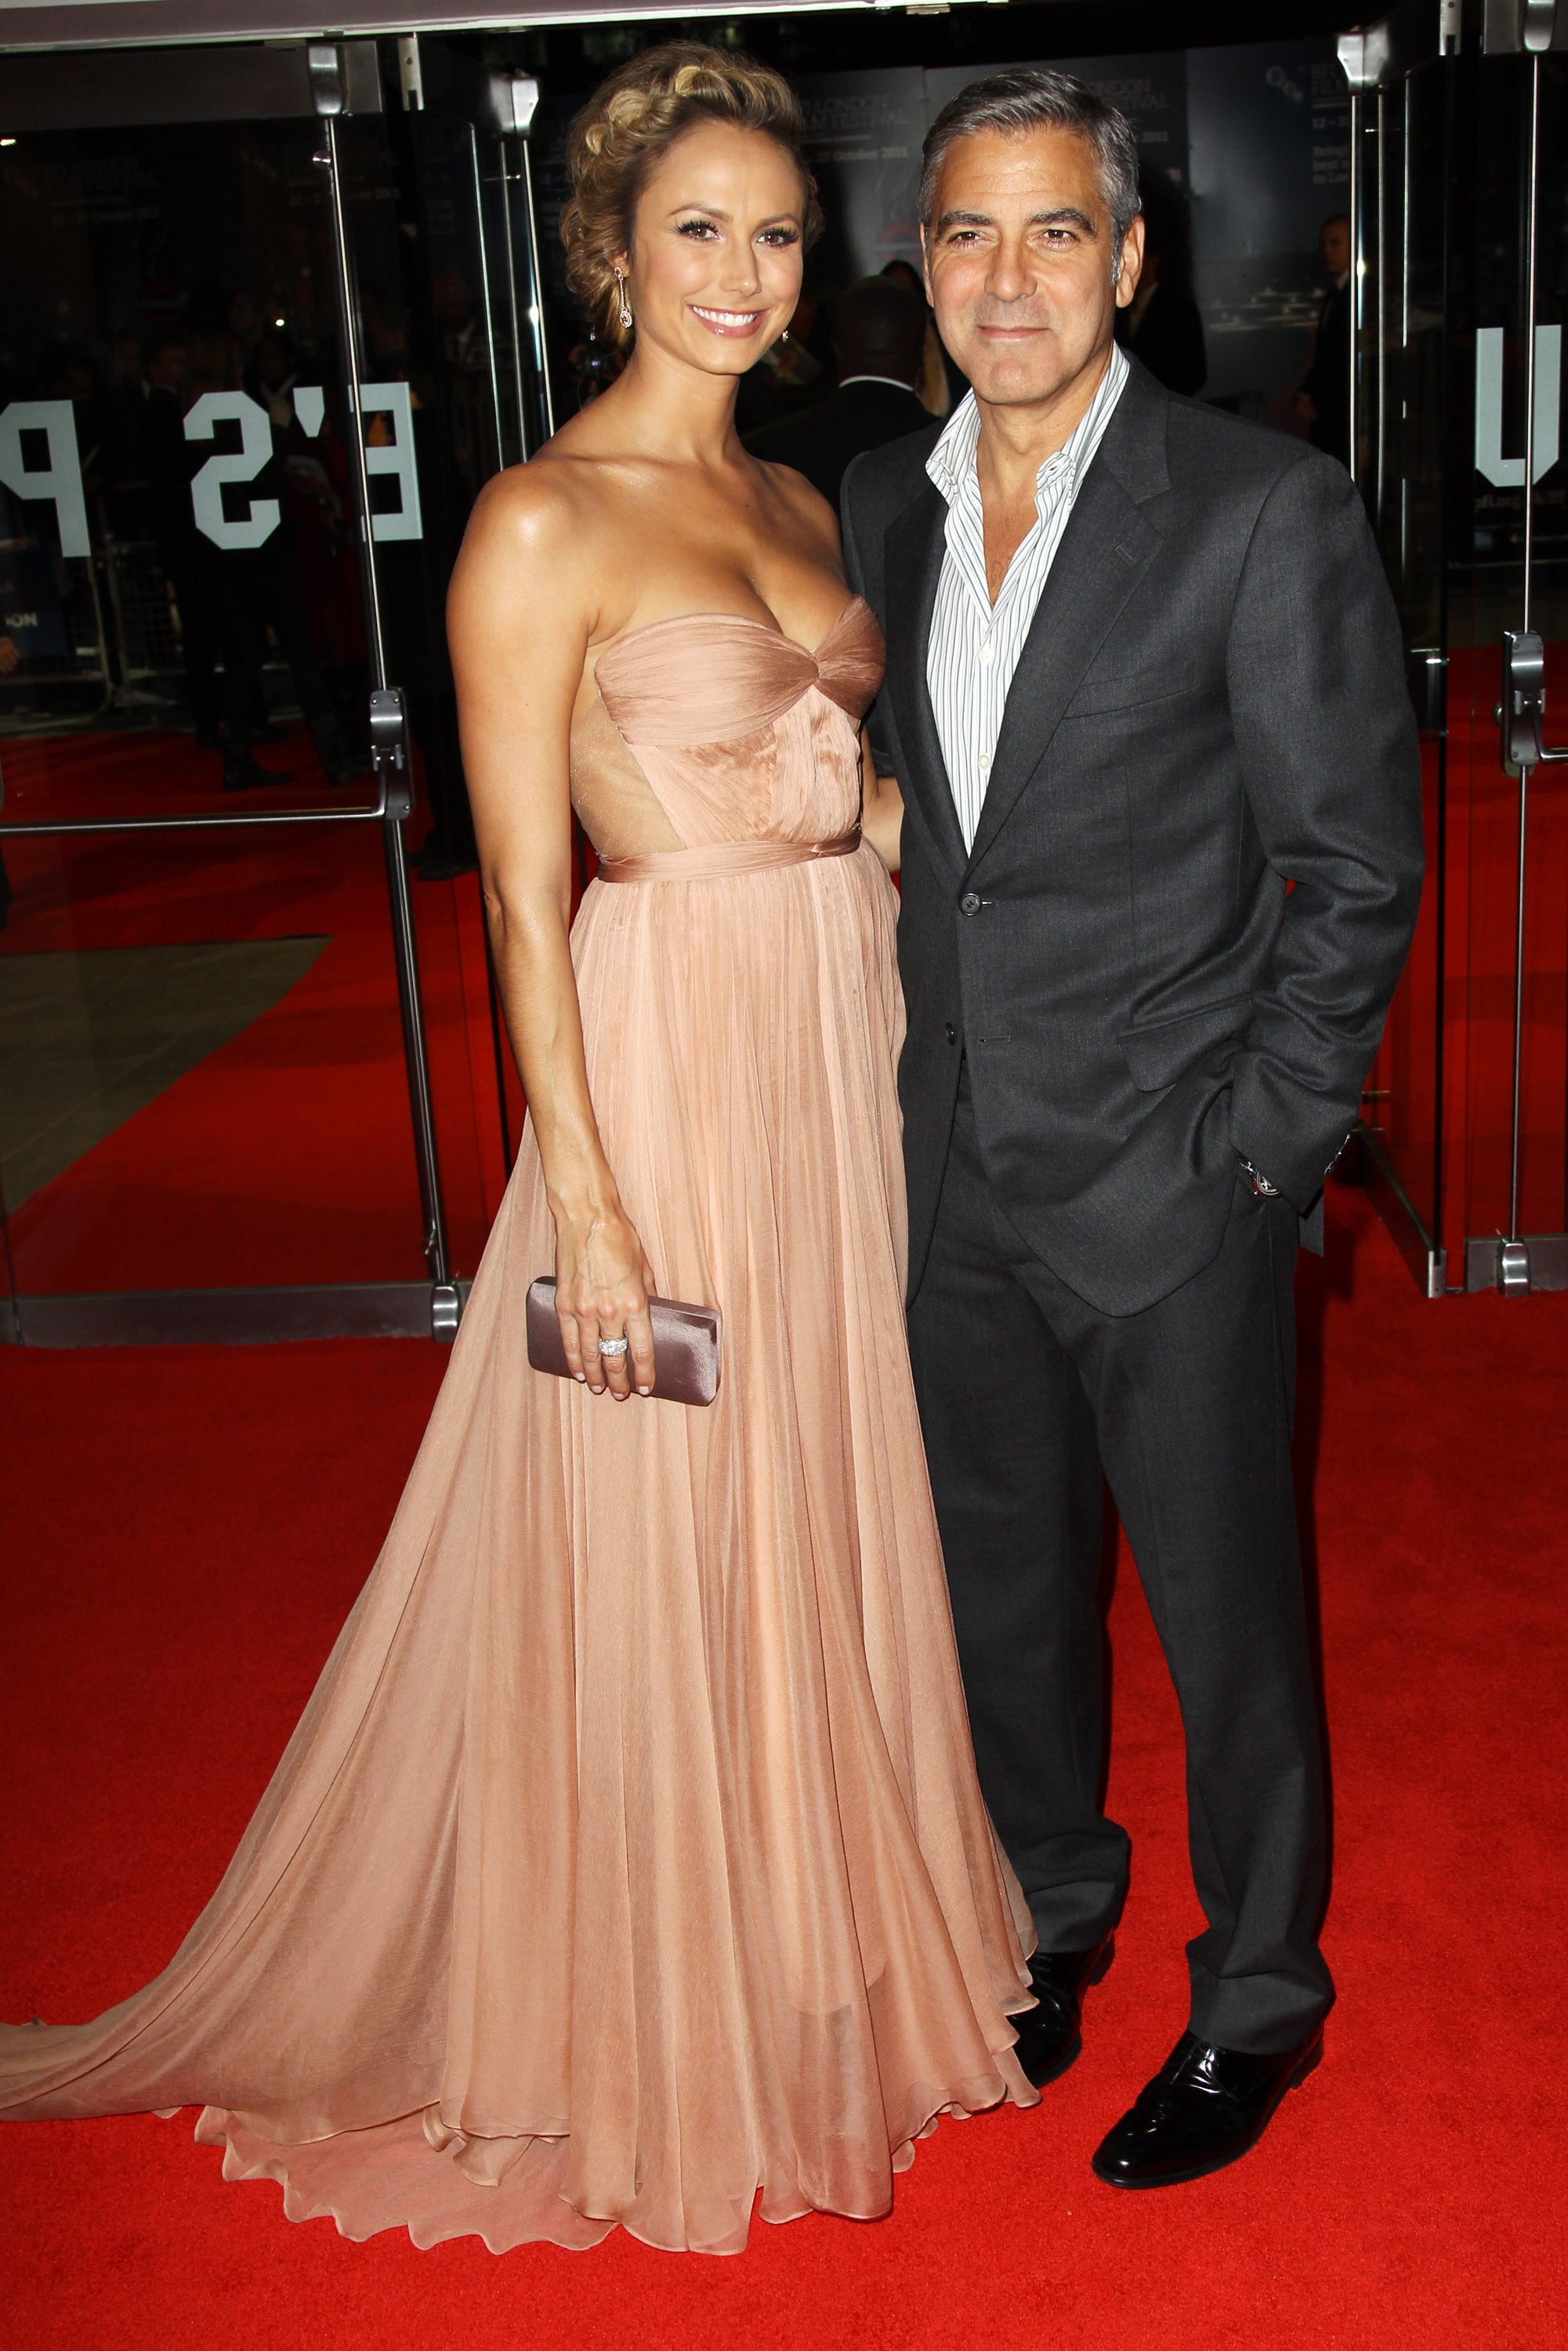 George Clooney and Stacy Keibler at the London premiere of The Descendants.